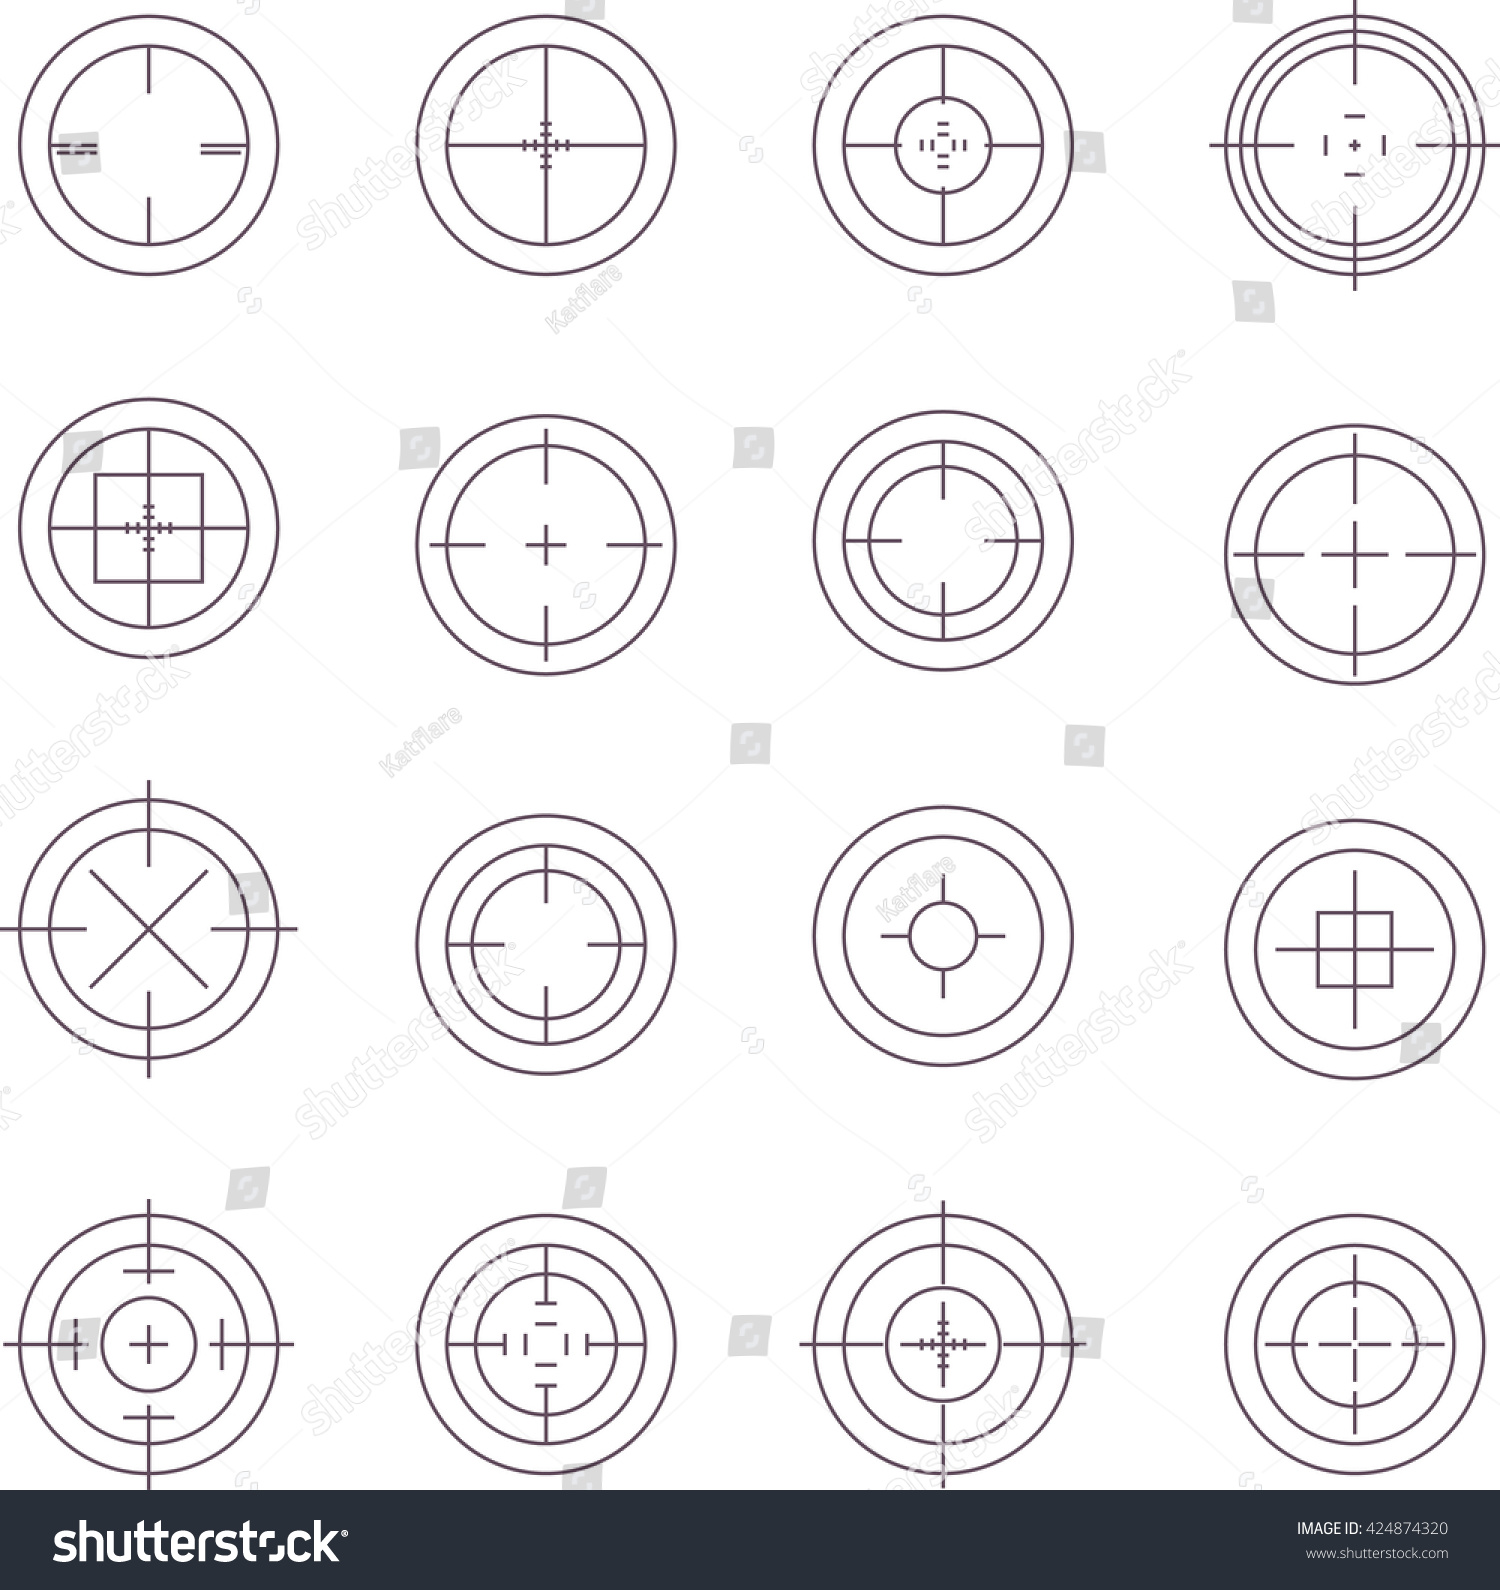 99fe96fdae7d Collection of flat game targets isolated. Crosshair icon. Aim icon.  Bullseye sign.